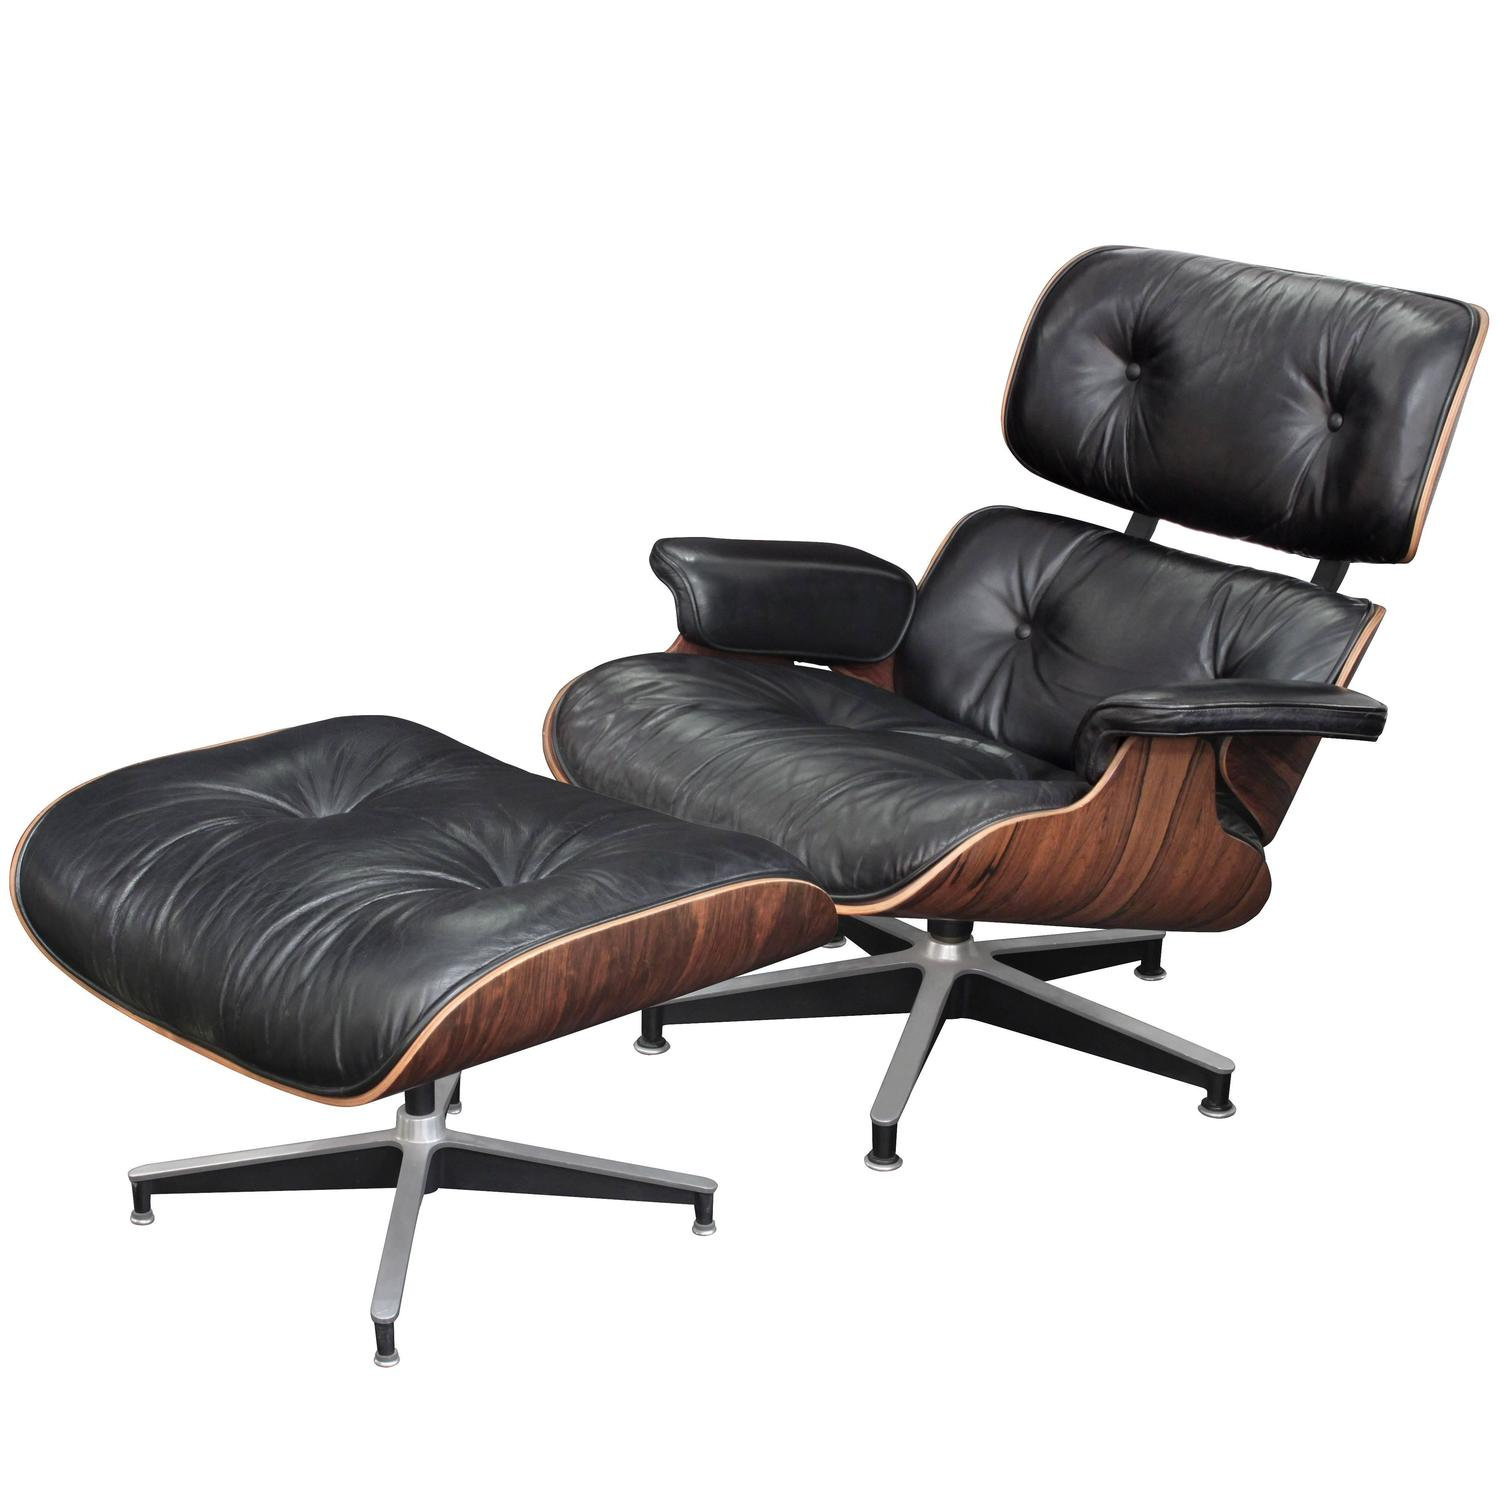 Iconic Lounge Chair and Ottoman by Charles and Ray Eames for